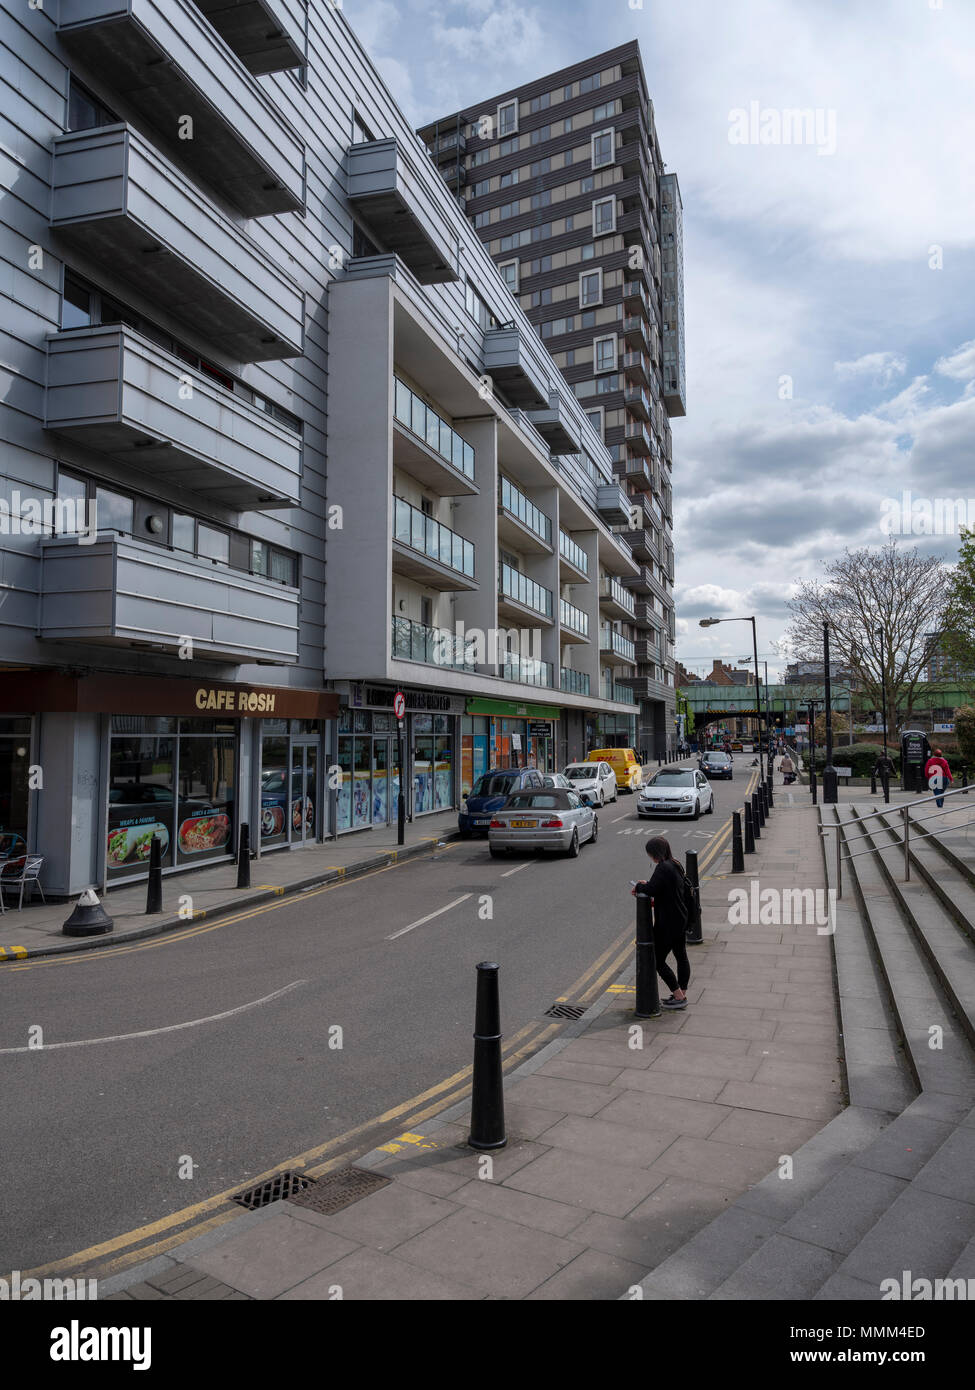 Street view Shadwell, east London, showing gentrification and regeneration of the inner city and east end - Stock Image